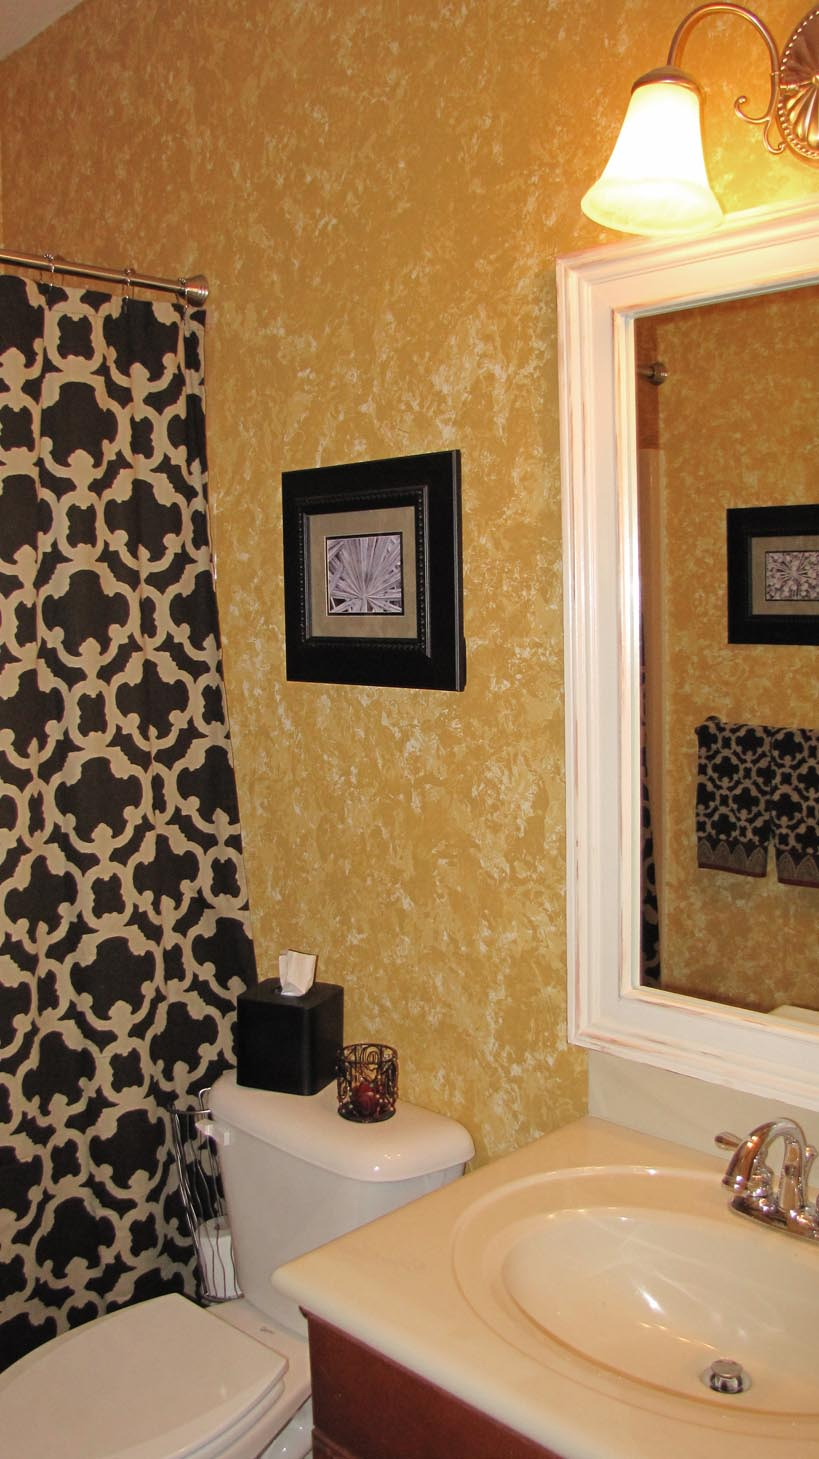 Bathroom Reveal With Framed Mirror Everyday A La Mode Diy Photography Organizing And More